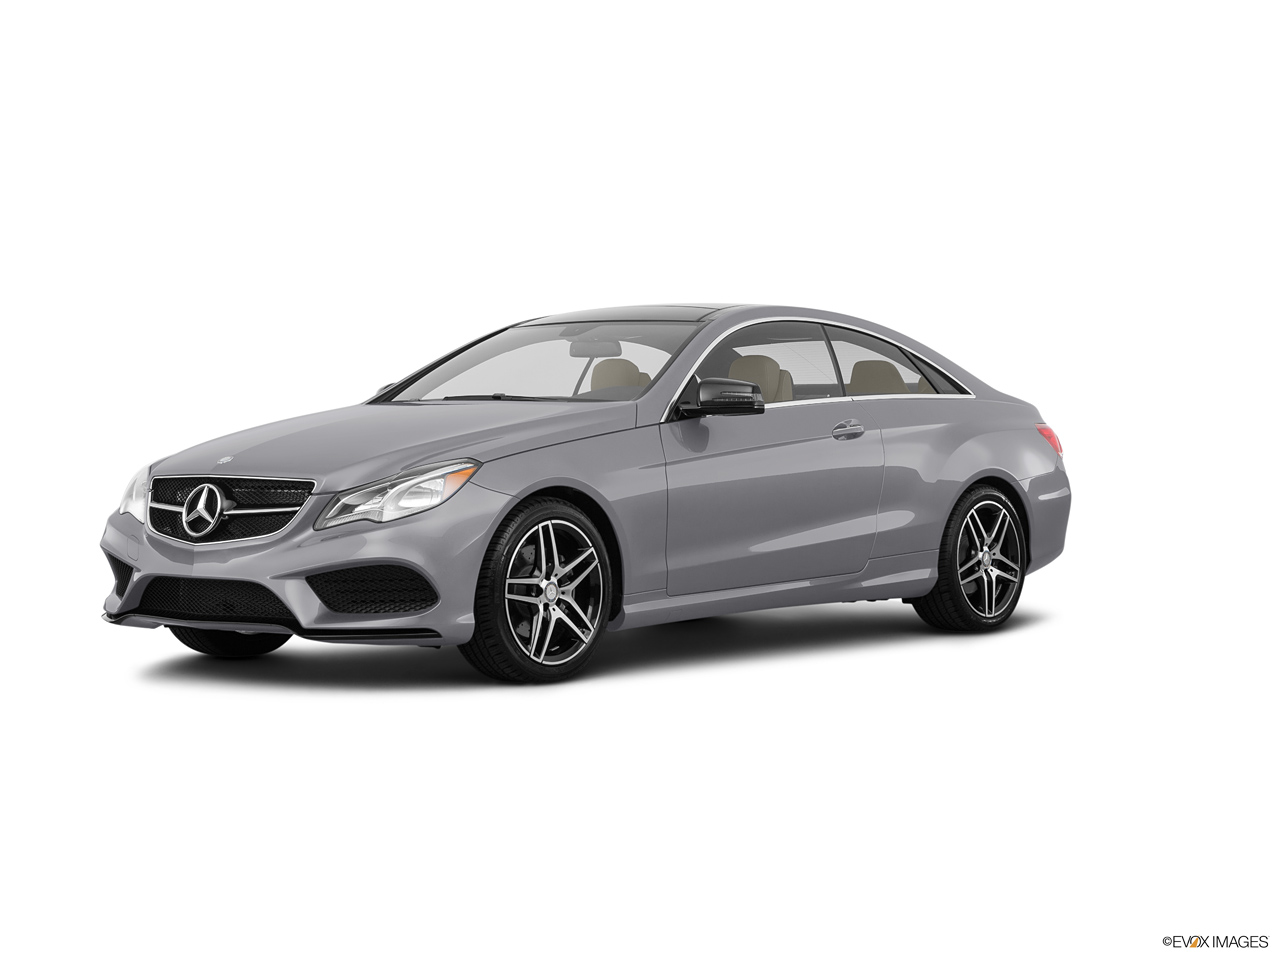 Car pictures list for mercedes benz e class coupe 2017 e for Mercedes benz bahrain